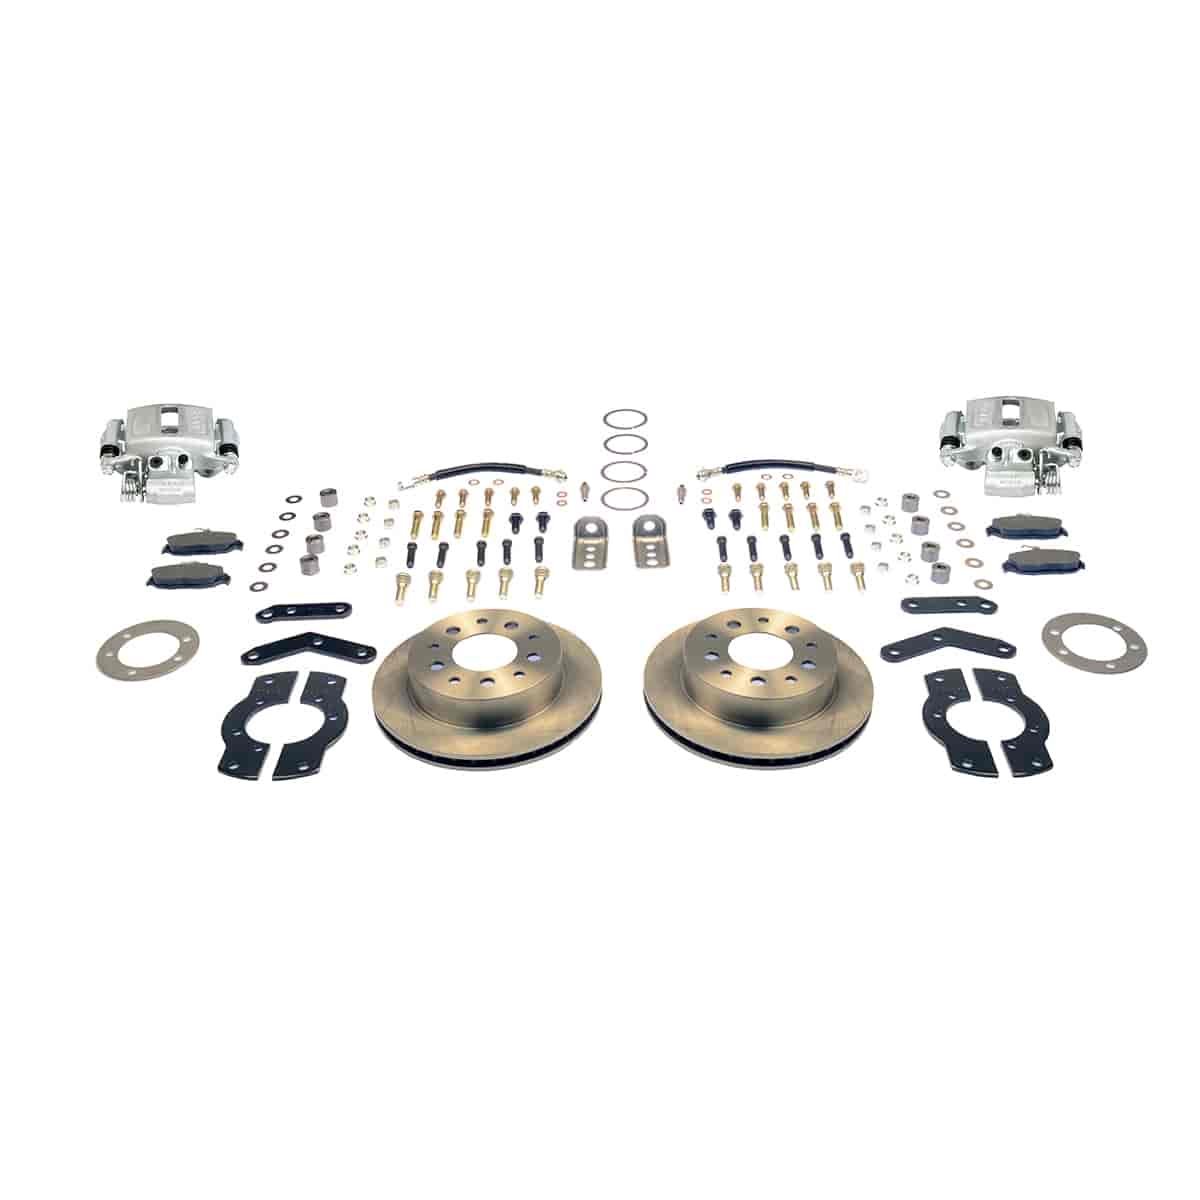 SSBC A125-4 - Stainless Steel Brakes Single Piston Rear Drum to Disc Brake Conversion Kits